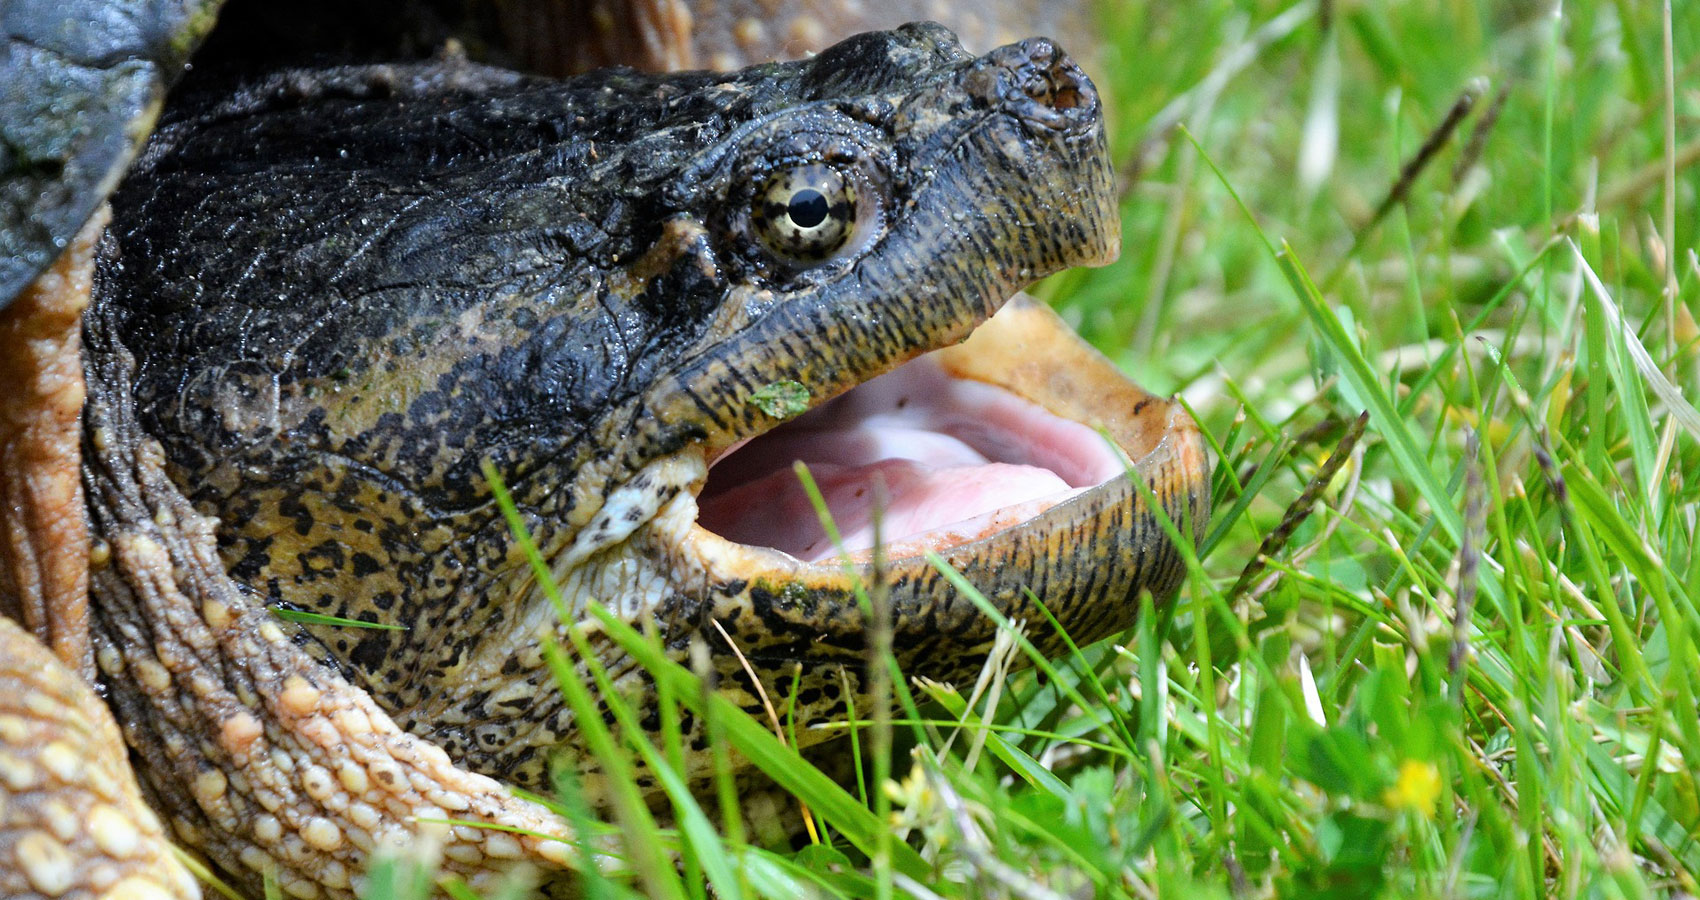 Snapping Turtle, a haiku written by John R. Cobb at Spillwords.com